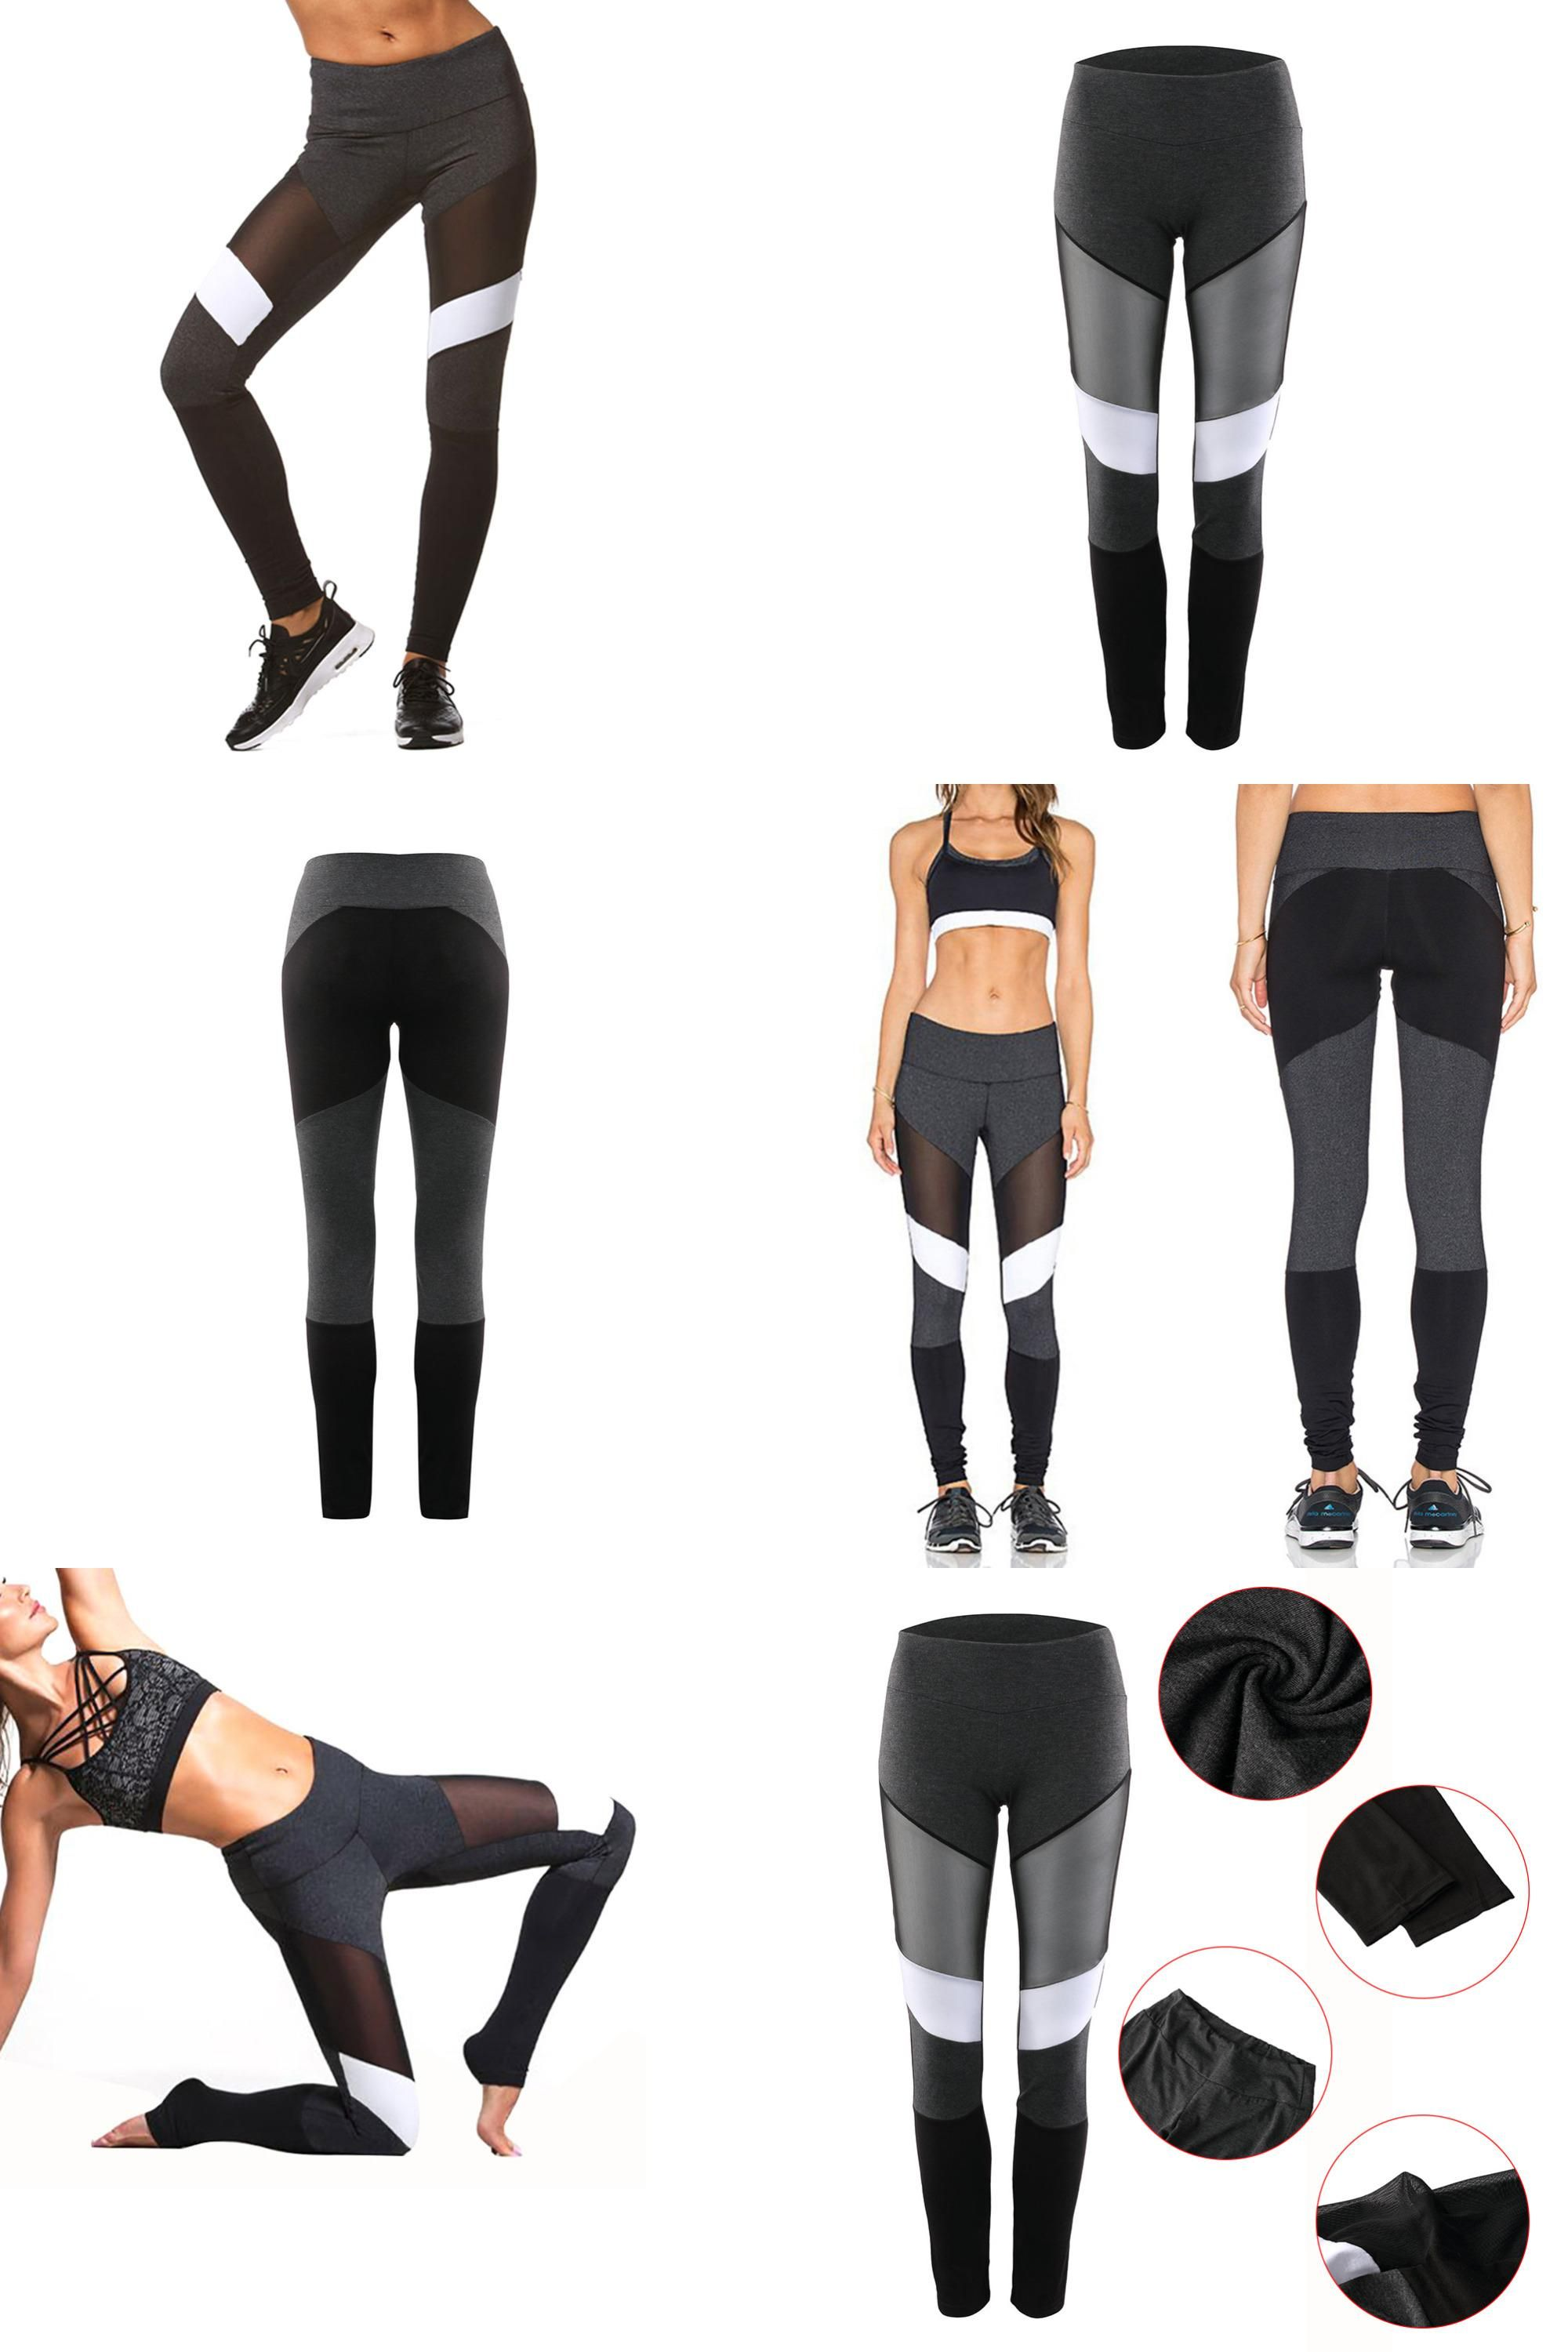 f7fa4b77d0b0c0 [Visit to Buy] New Women Yoga Pants Mesh Patchwork running tight push up  sexy black-white high quality elastic sport fitness gym leggings  #Advertisement